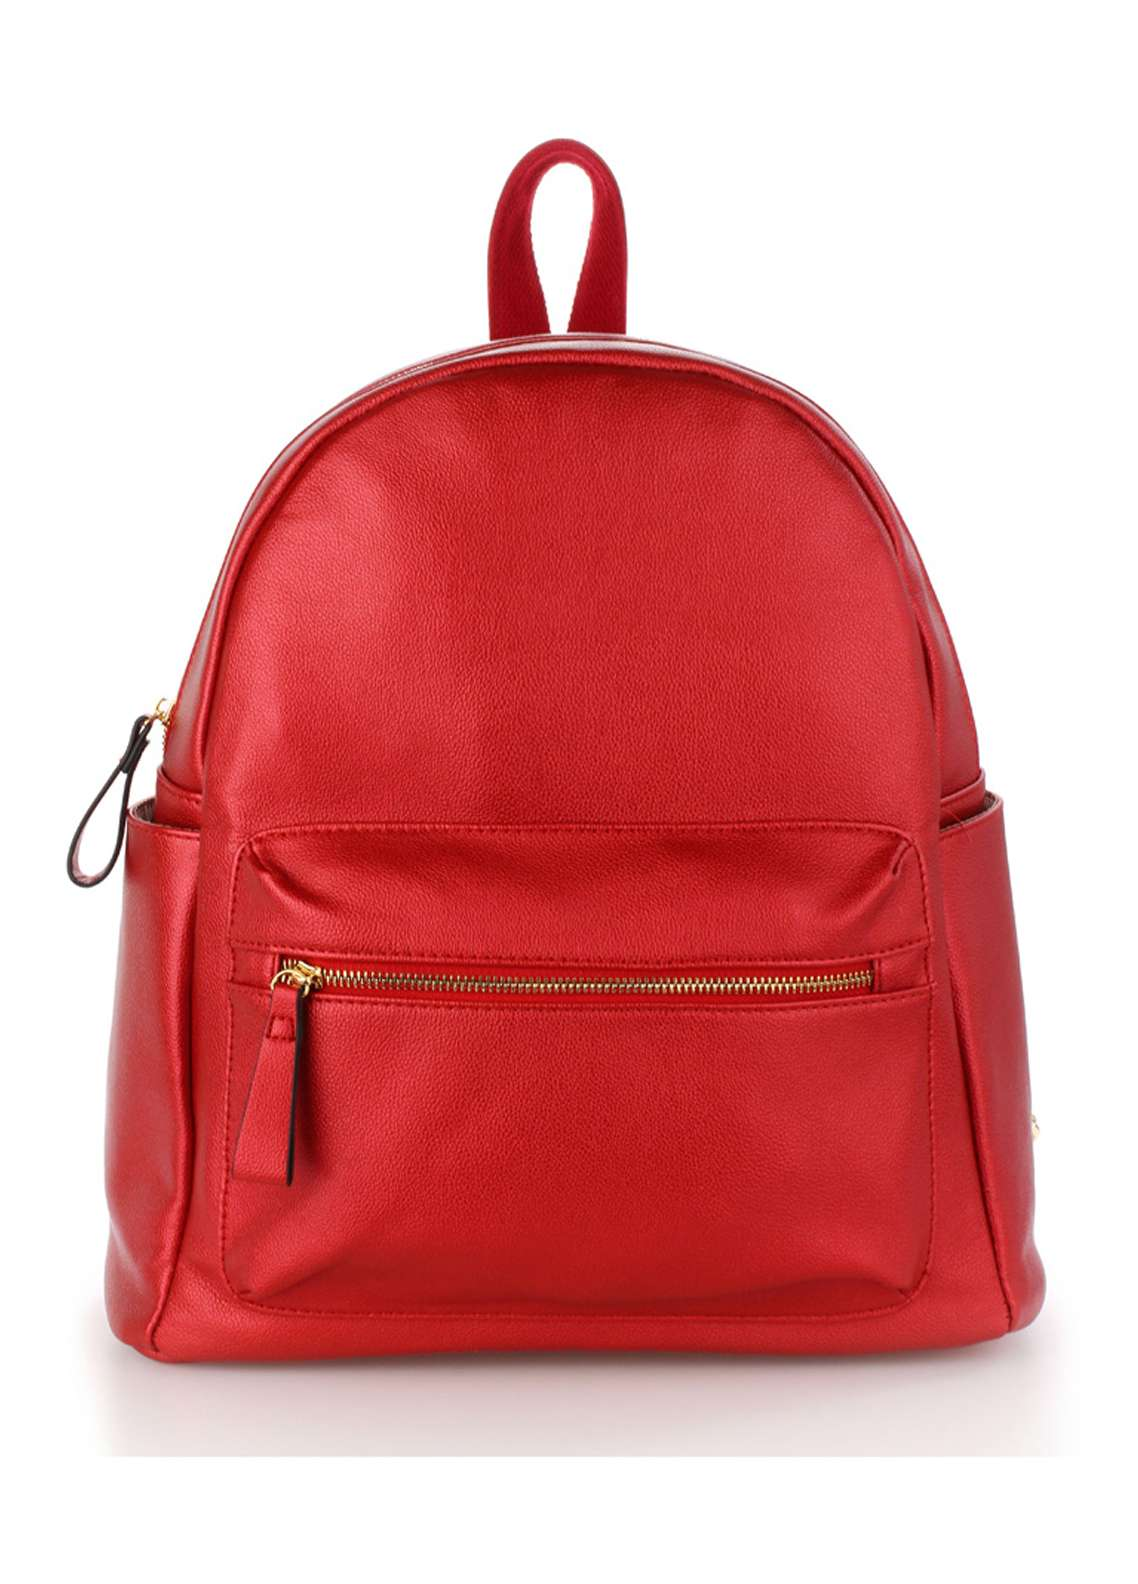 Leesun London Soft Faux Leather Backpack Bags  for Unisex  Burgundy with Plain Texture